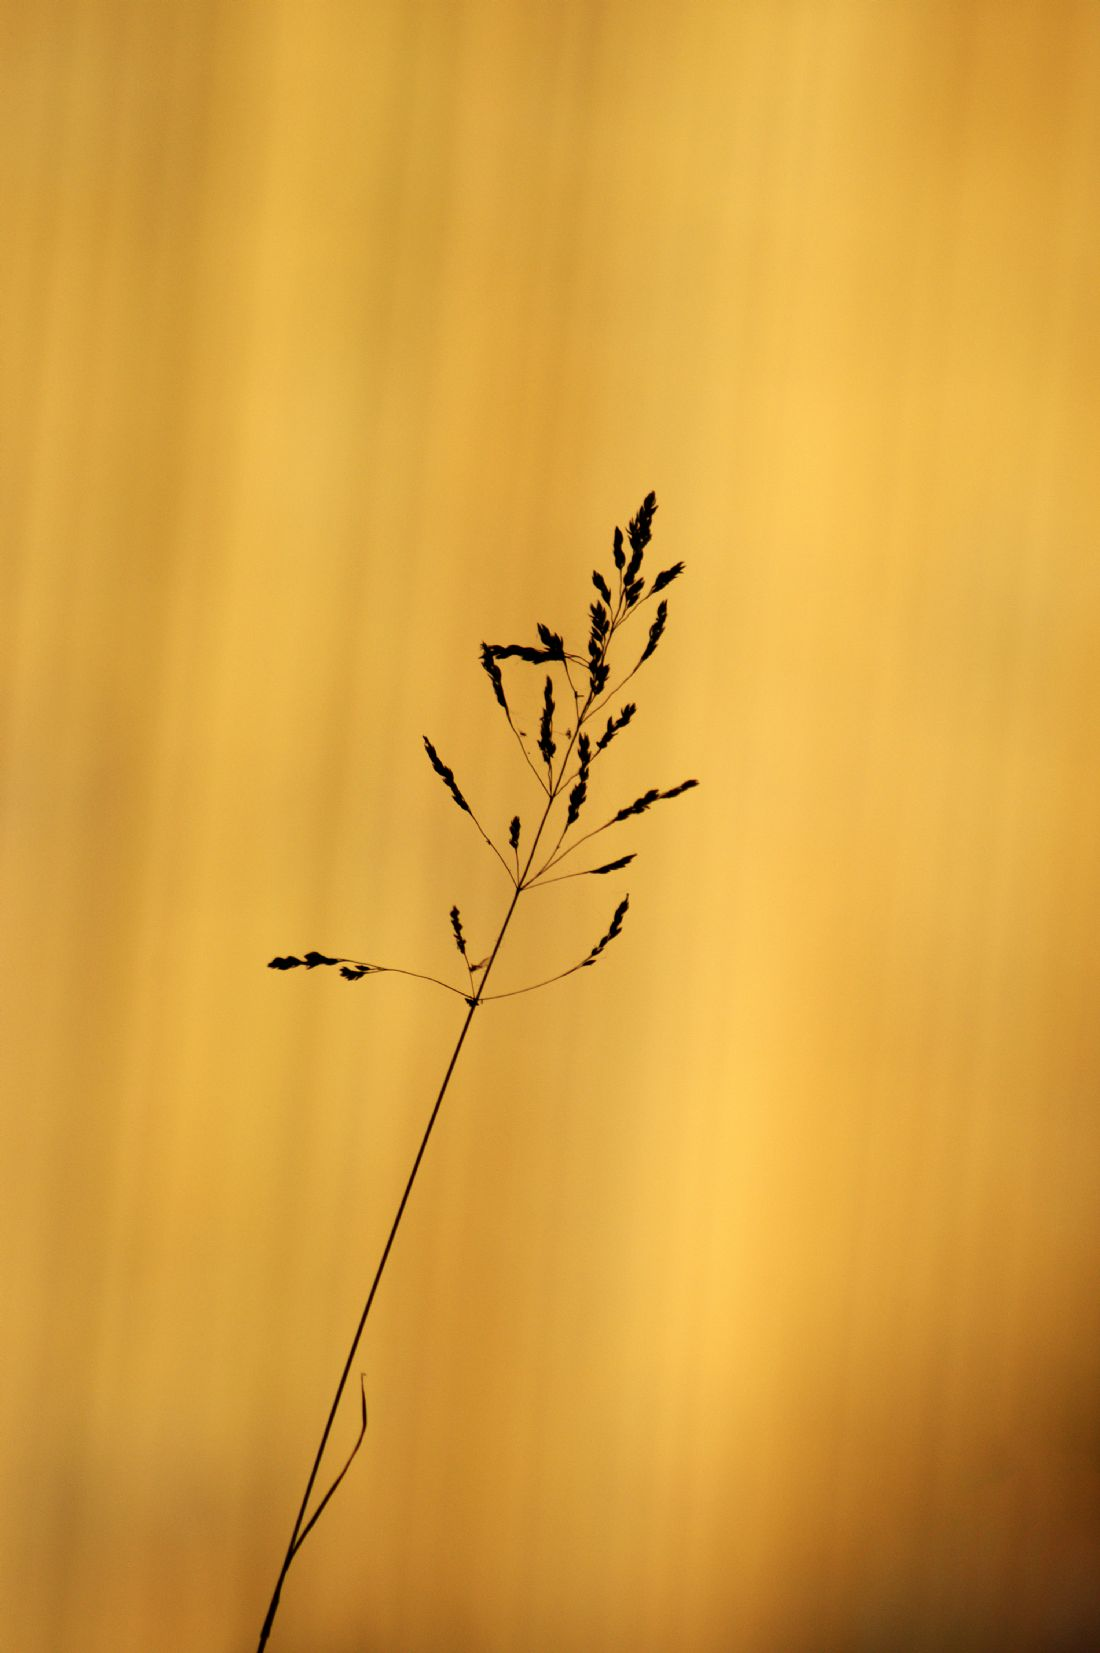 Chris Day | Grass Silhouette